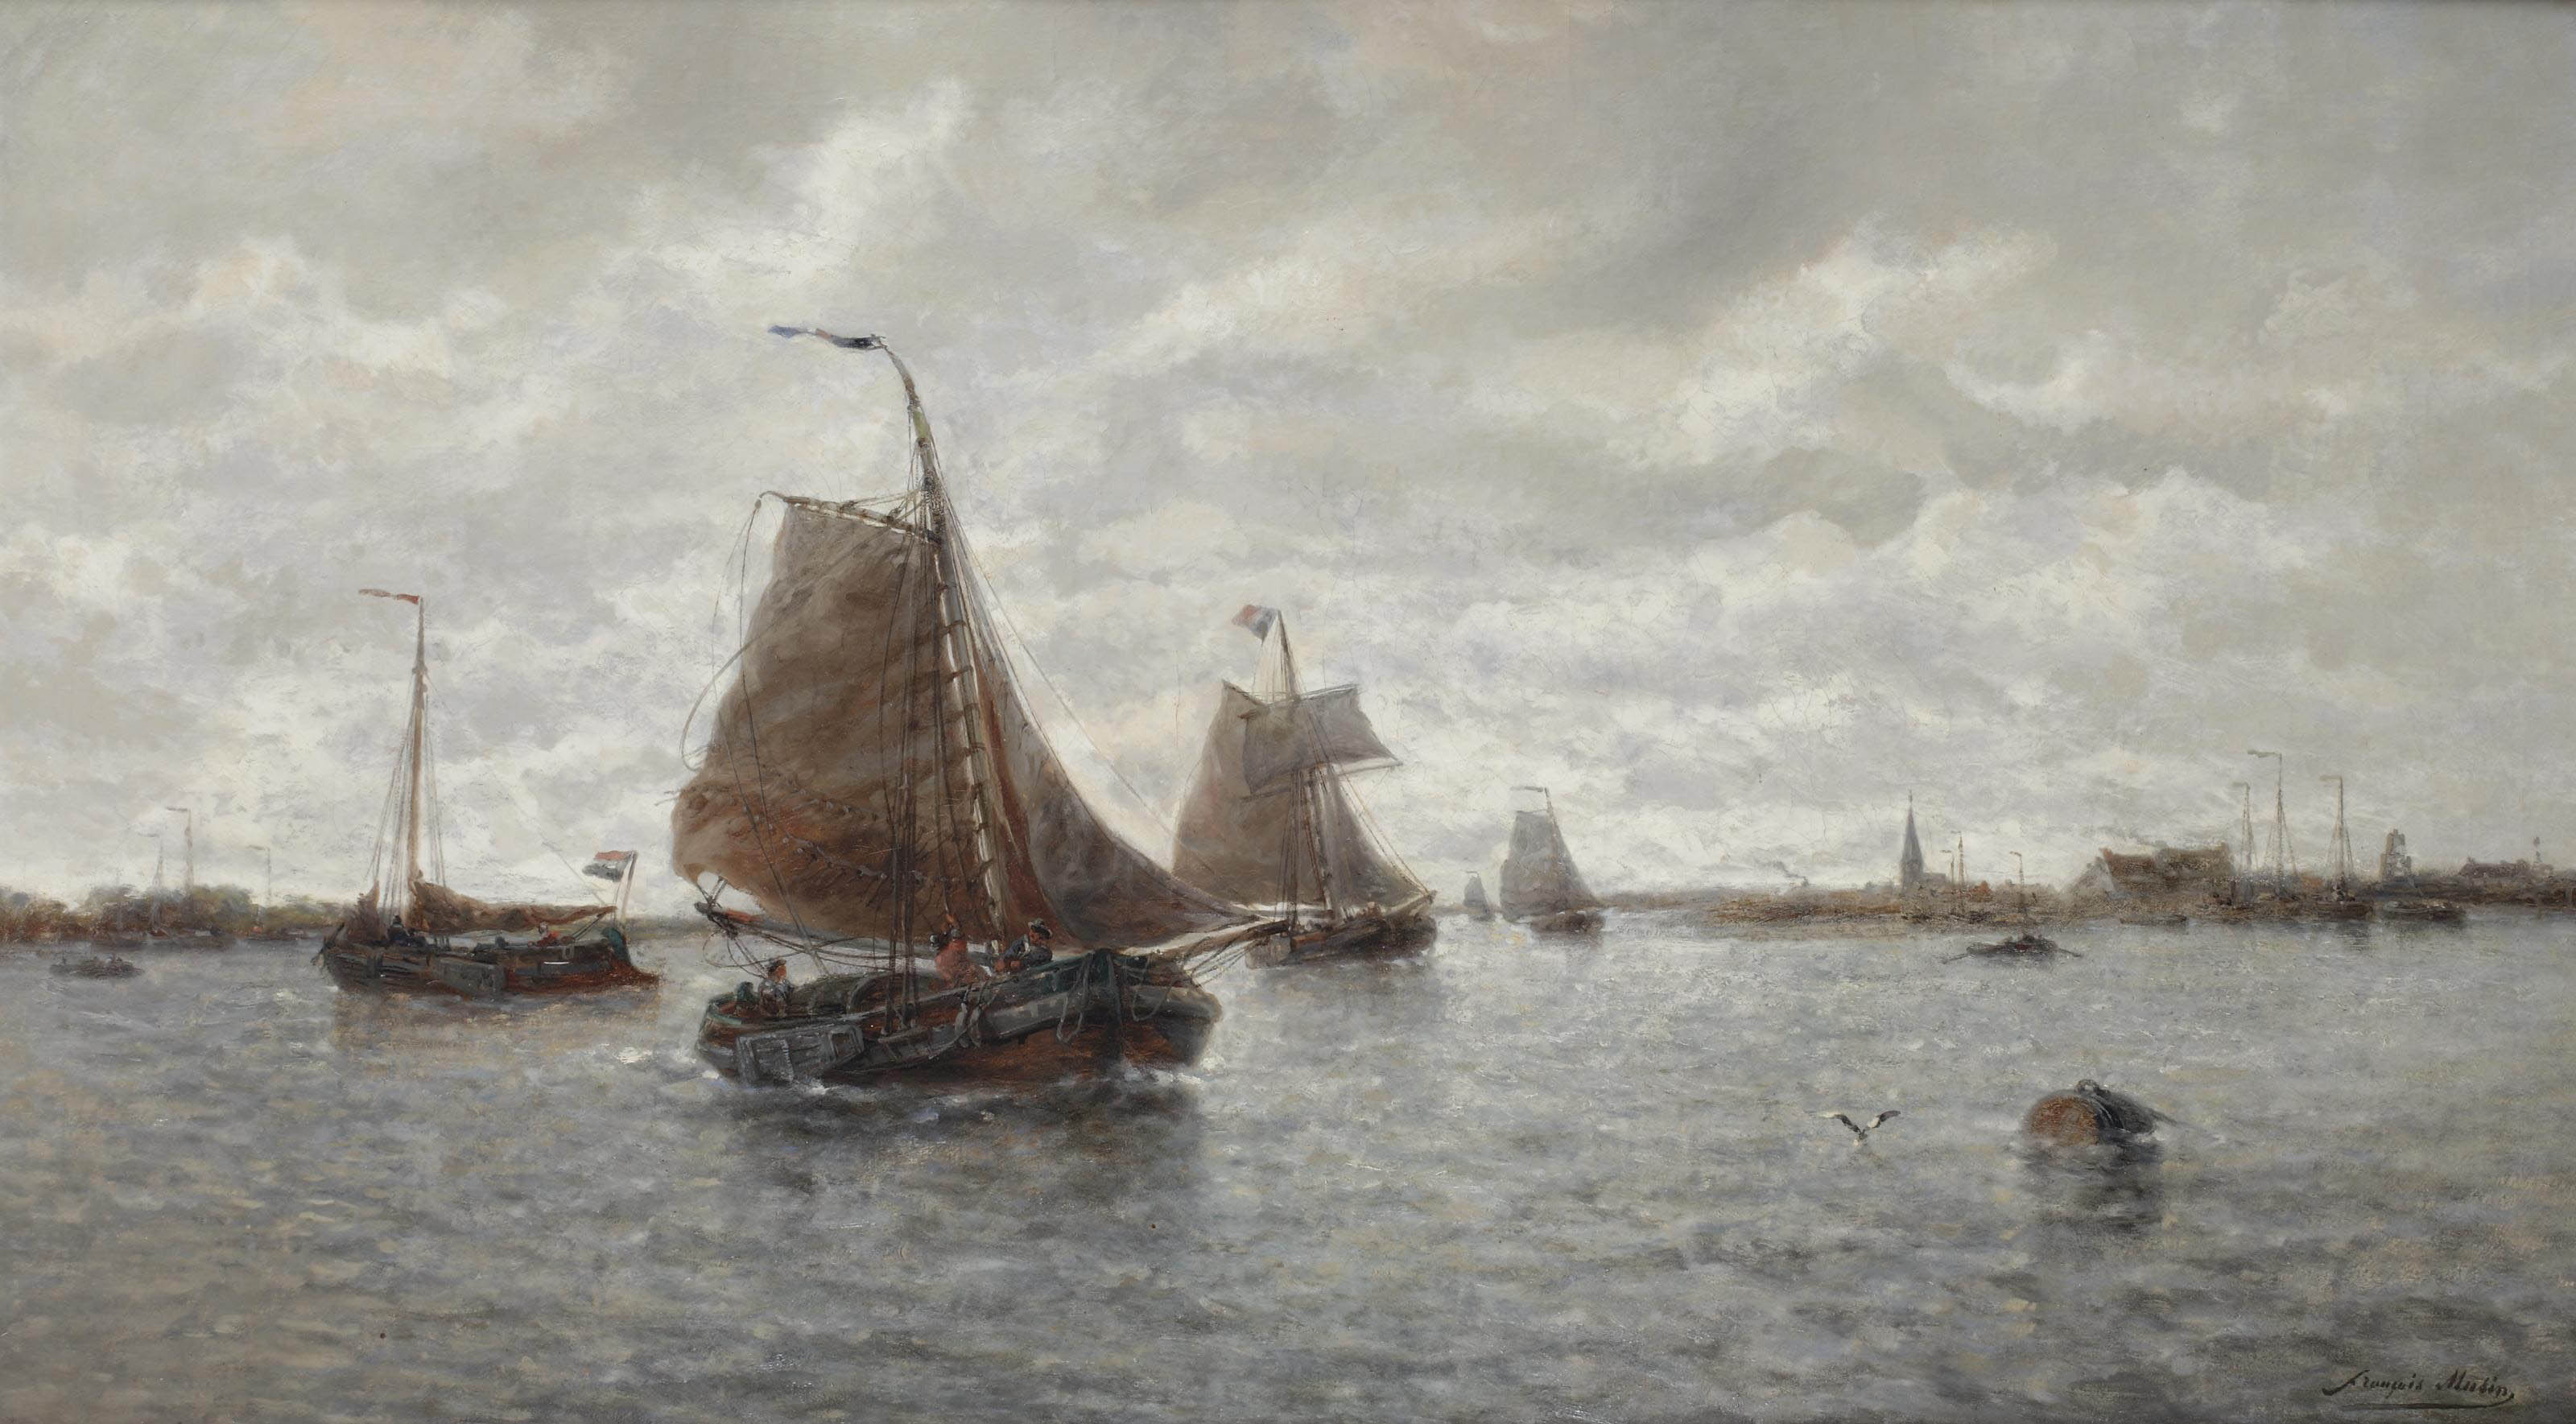 Sailing vessels on a busy river